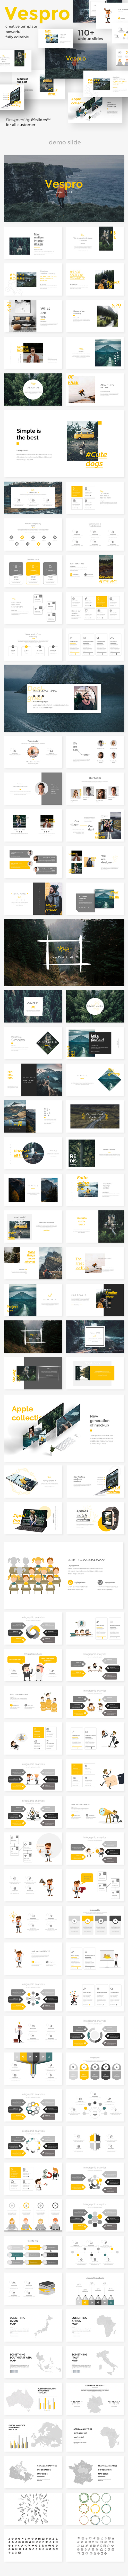 Vespro Creative Powerpoint Template - Creative PowerPoint Templates